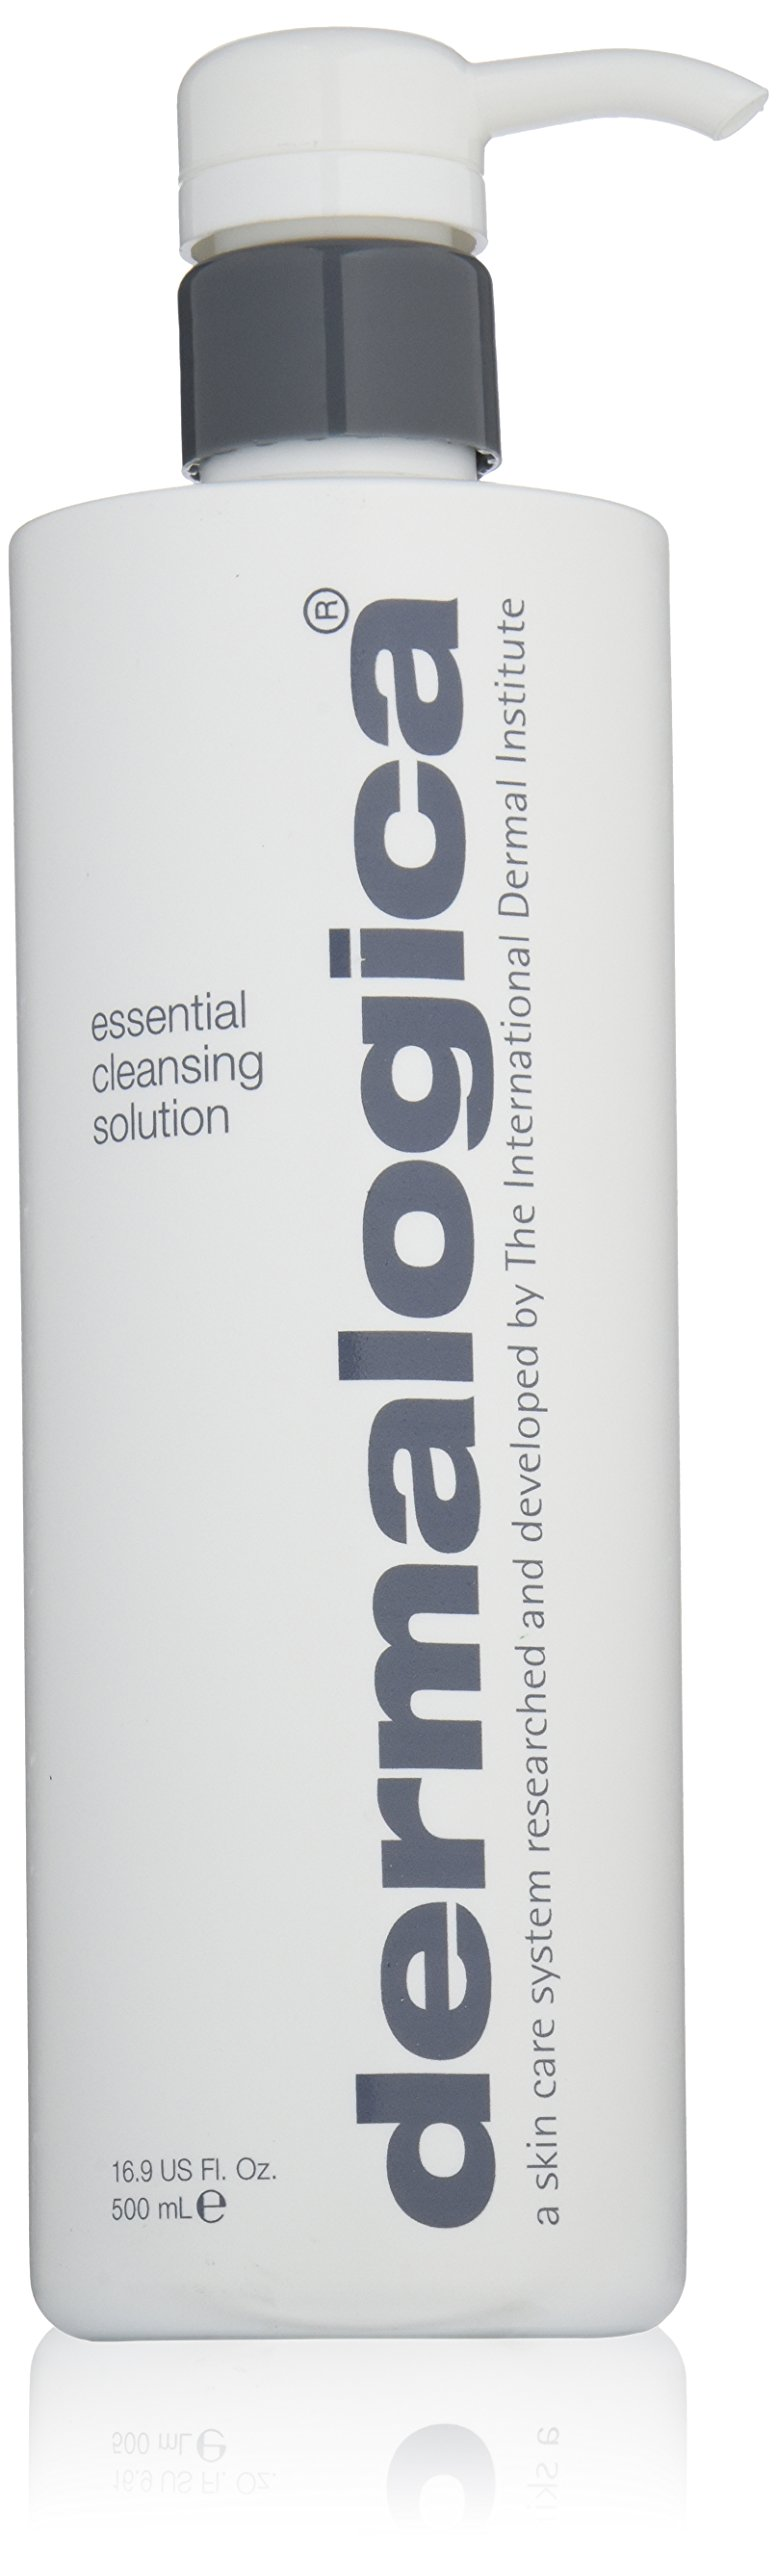 Dermalogica Essential Cleansing Solution, 16.9 Fluid Ounce